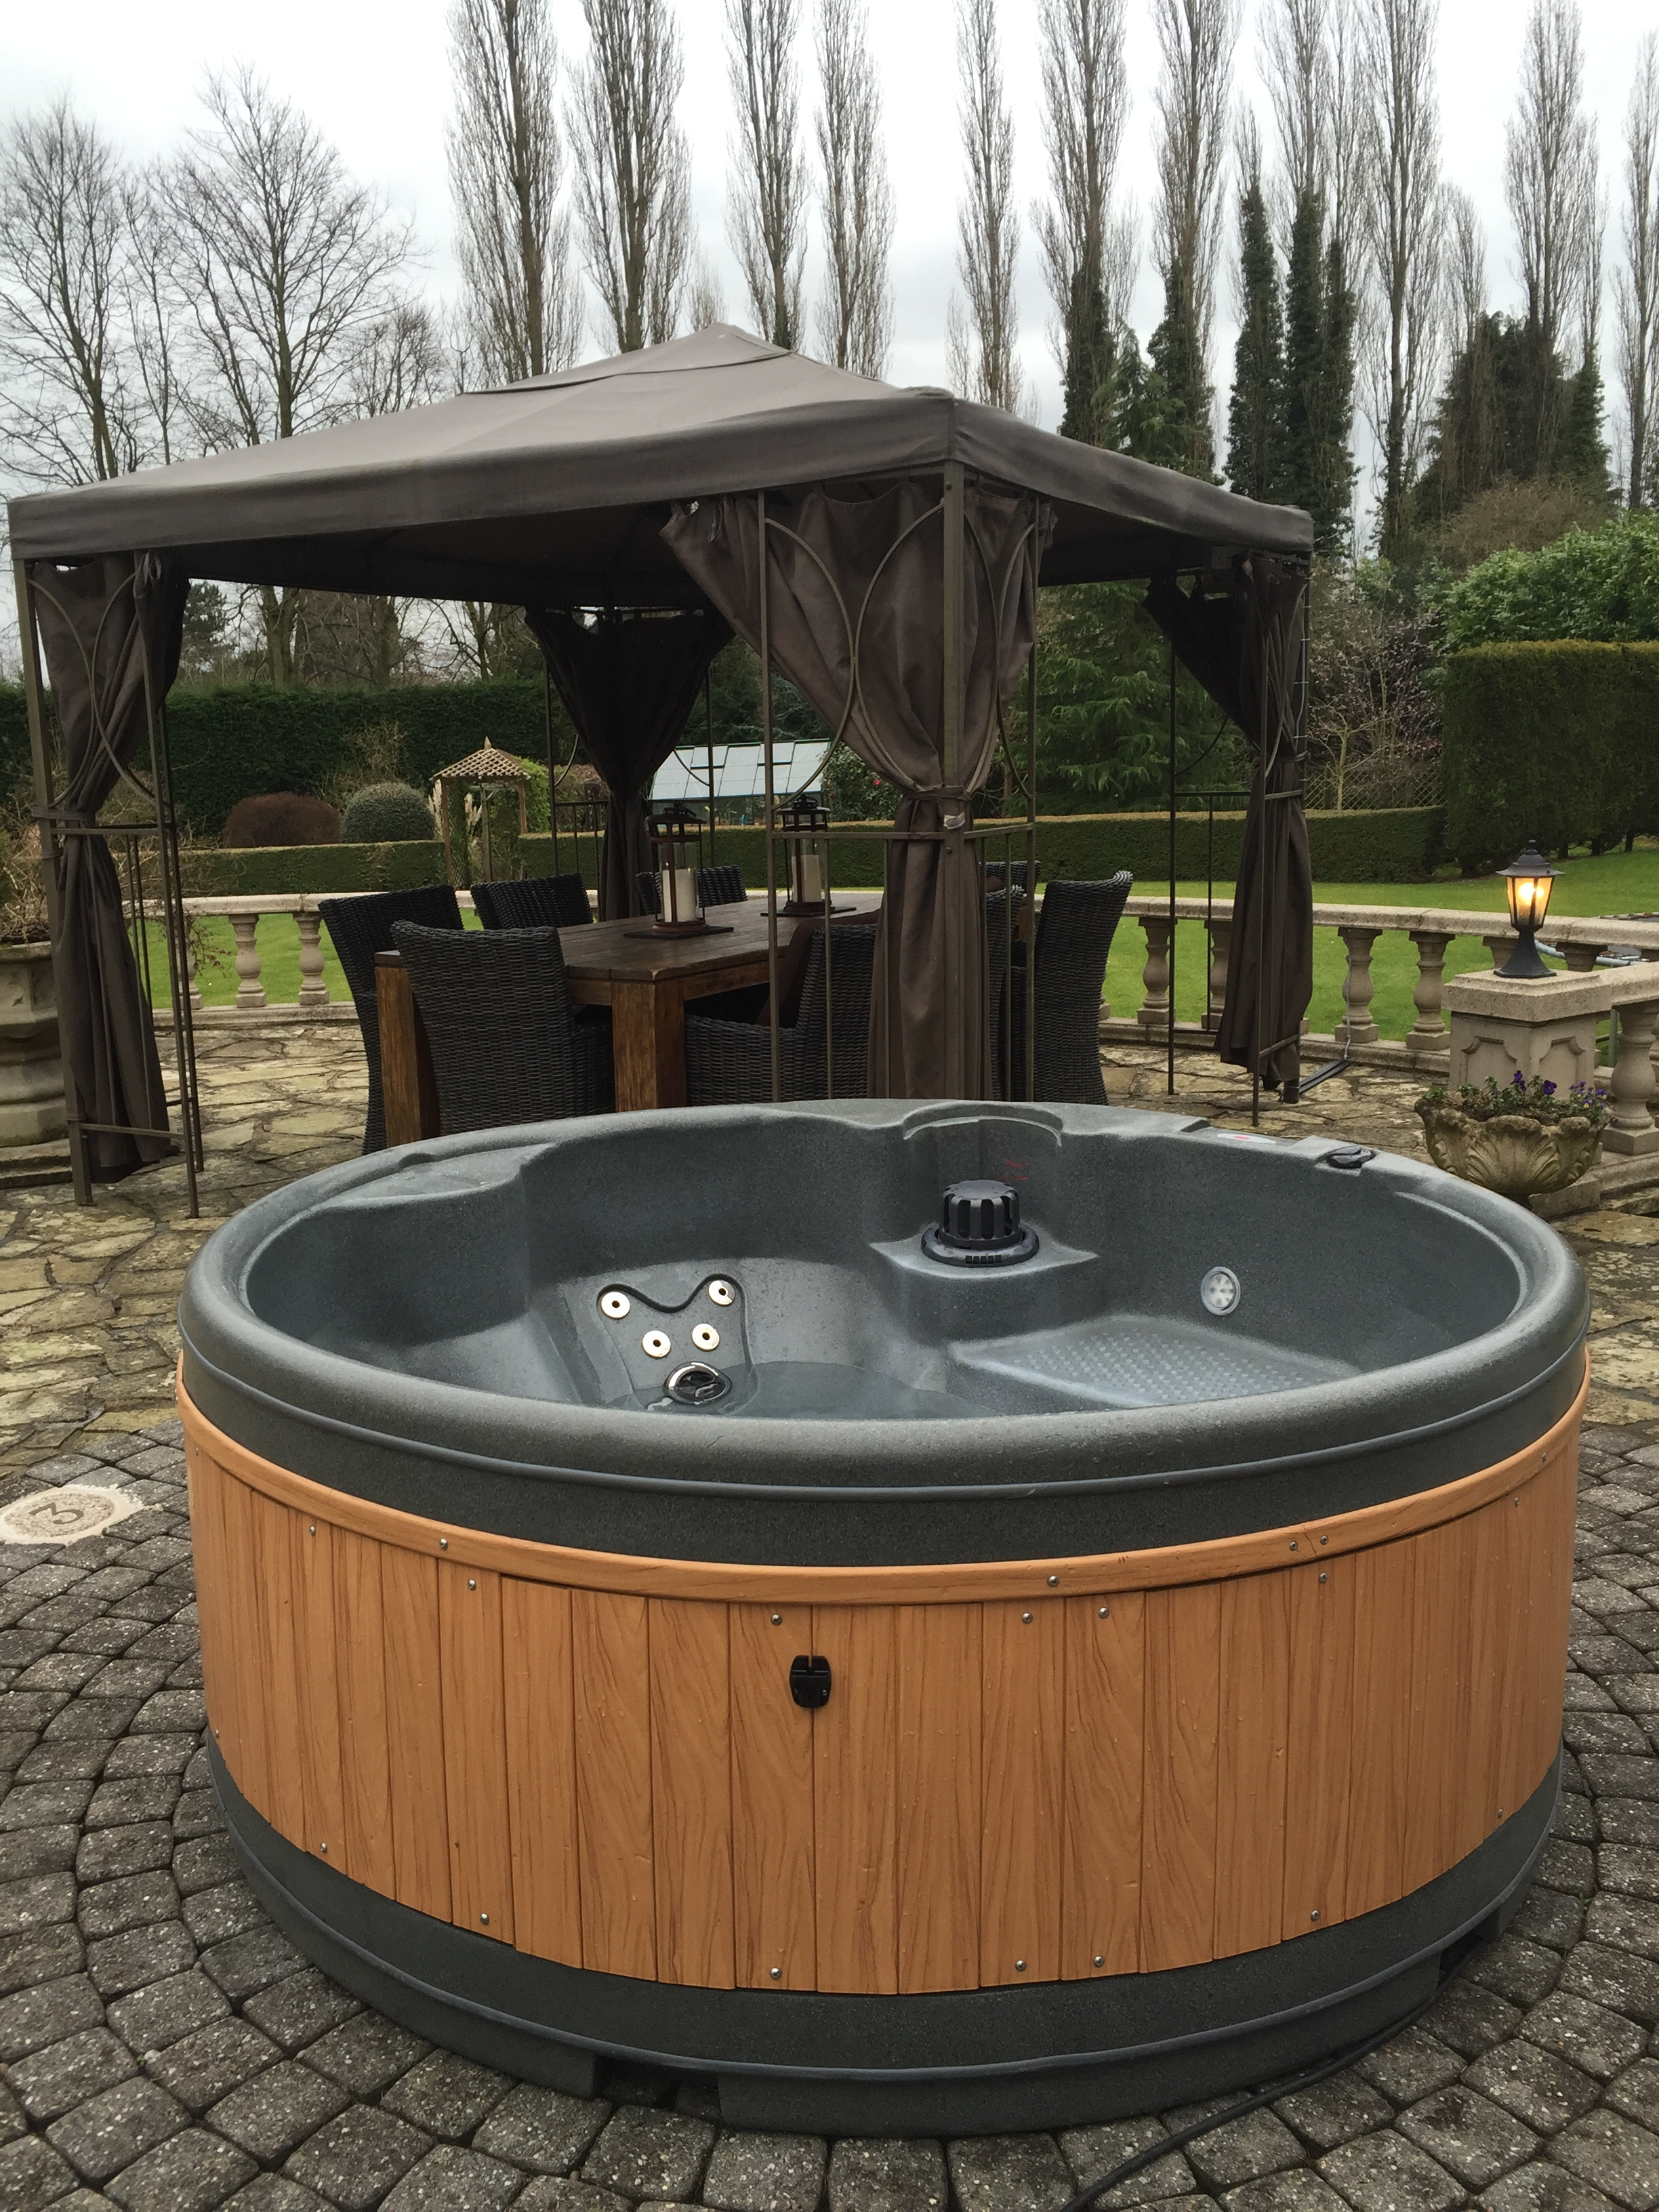 Sutton in Ashfield Hot Tub Hire Cheap Local Hot Tub Rental Nottingham